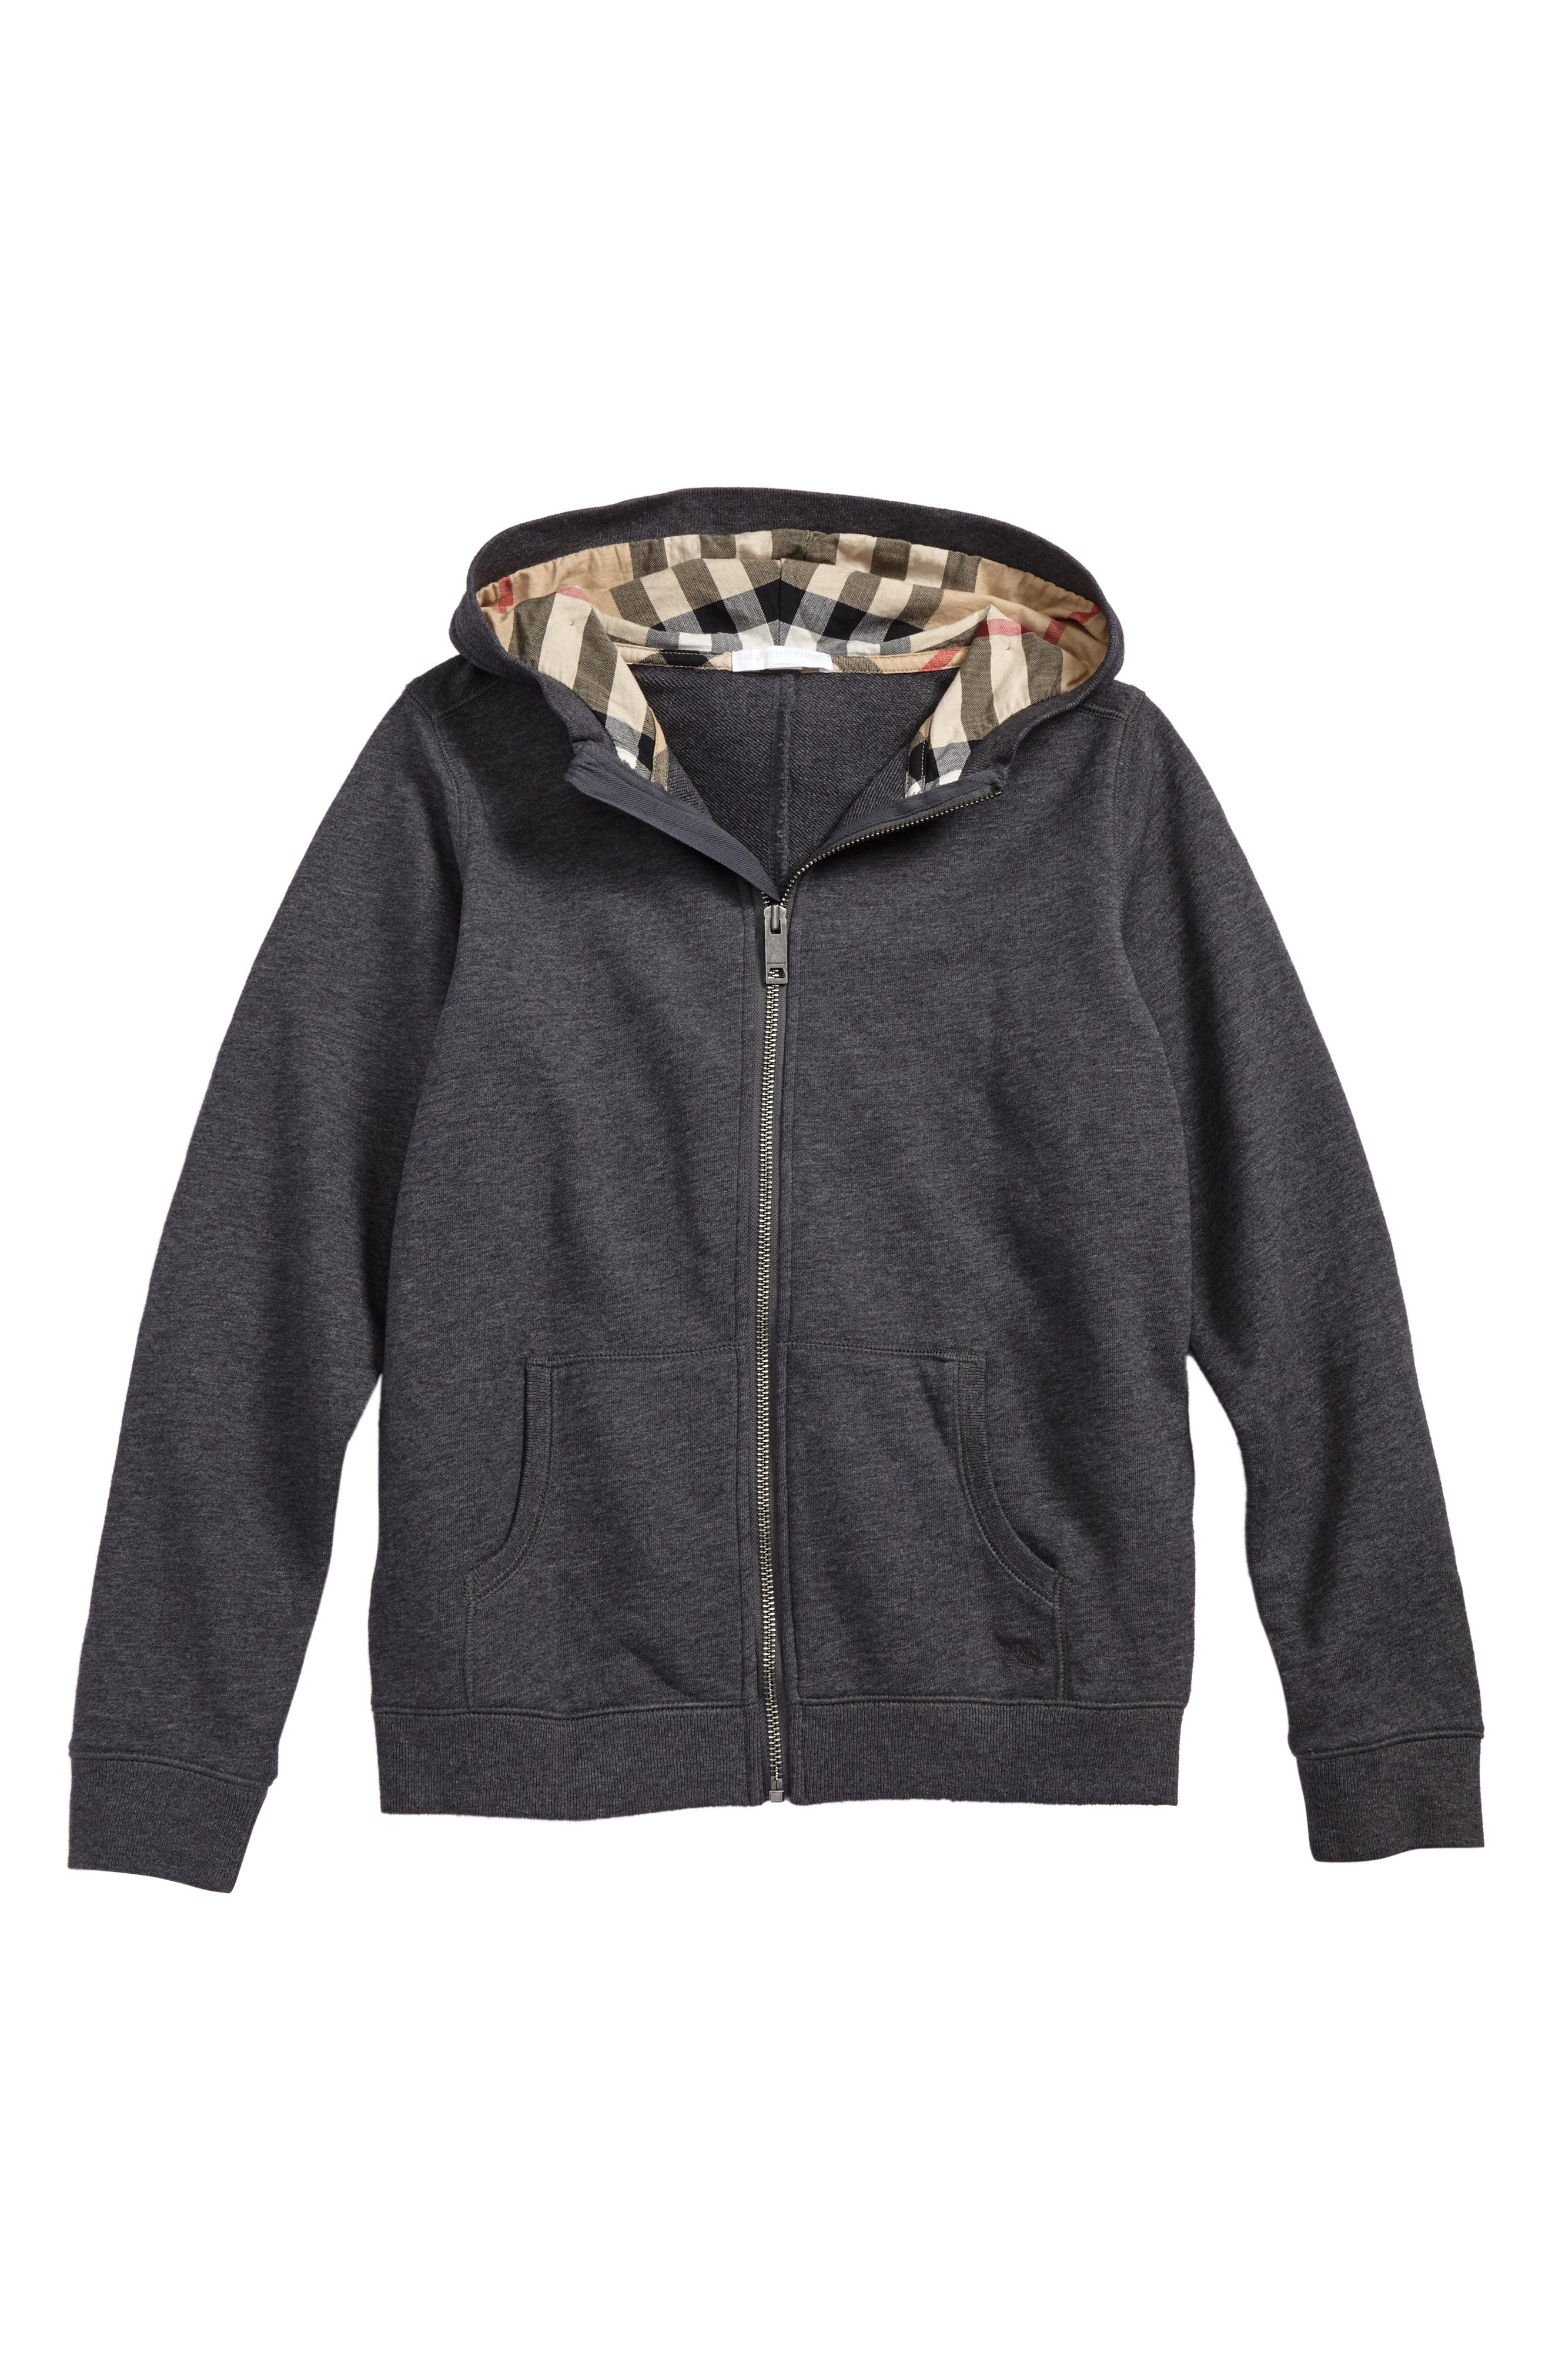 Main Image - Burberry Pearcy Hoodie (Little Boys & Big Boys)